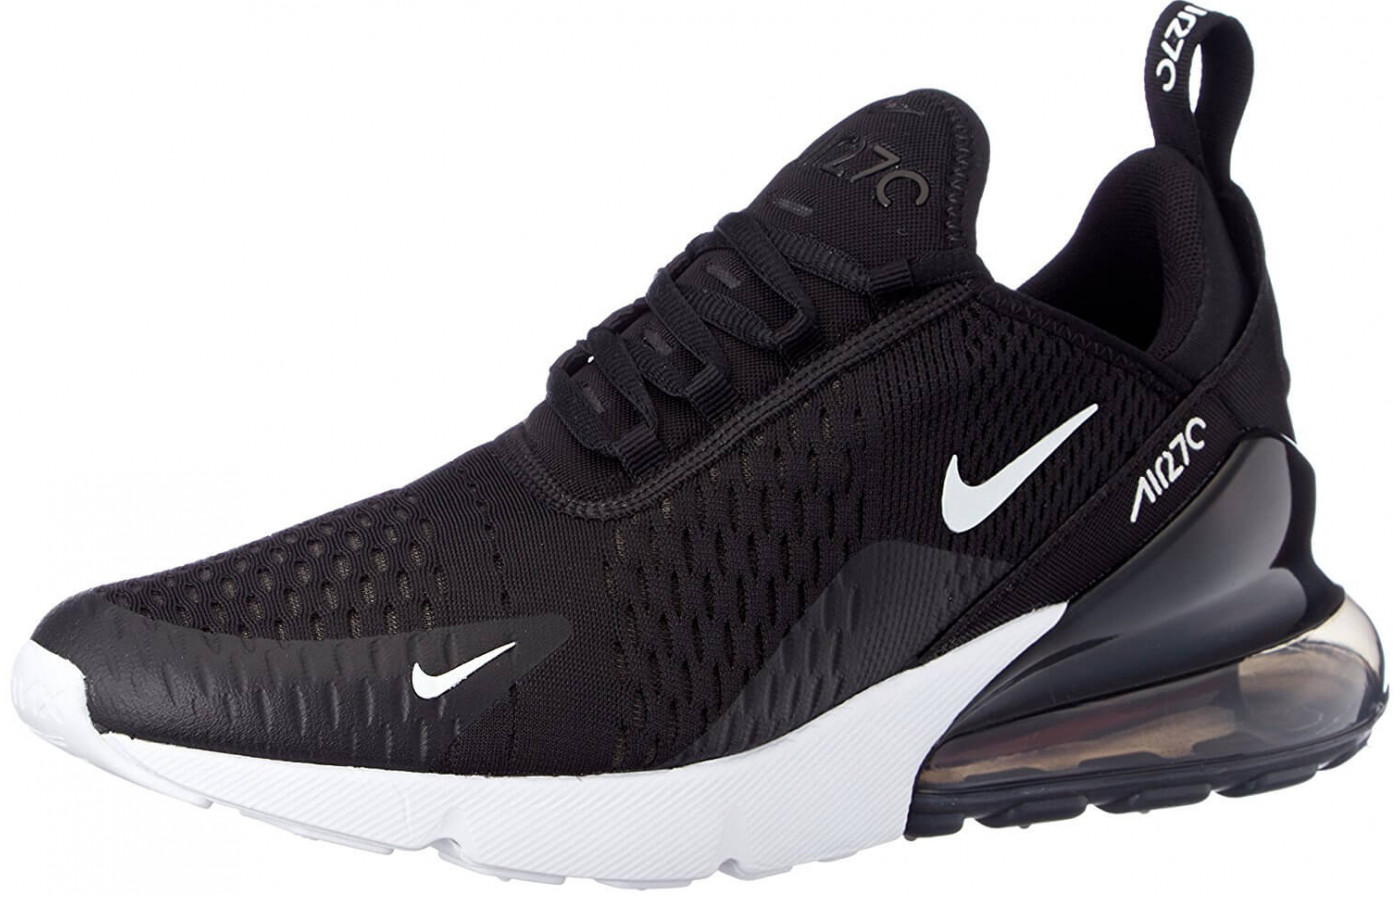 promo code ceeee ee424 Nike Air Max 270. Mesh upper and 270 degrees of Air ...